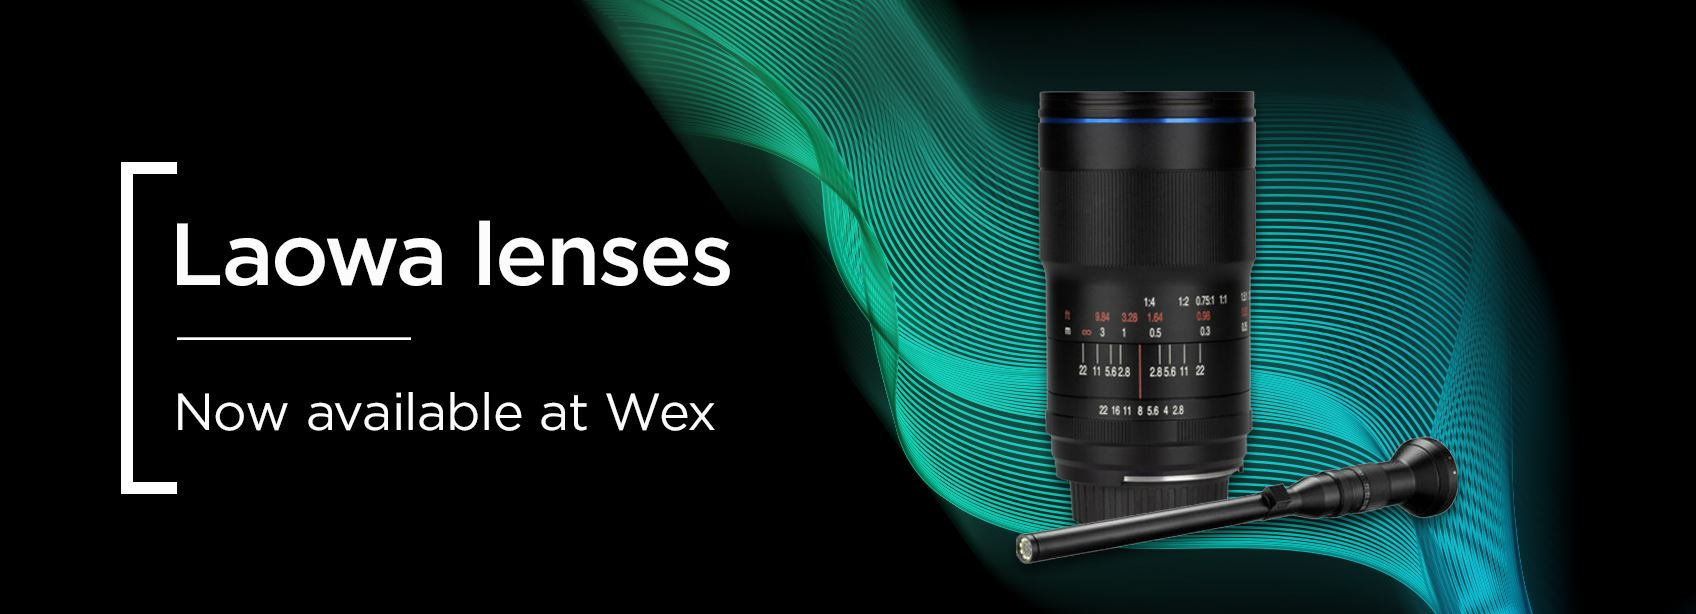 Laowa lenses now available at Wex